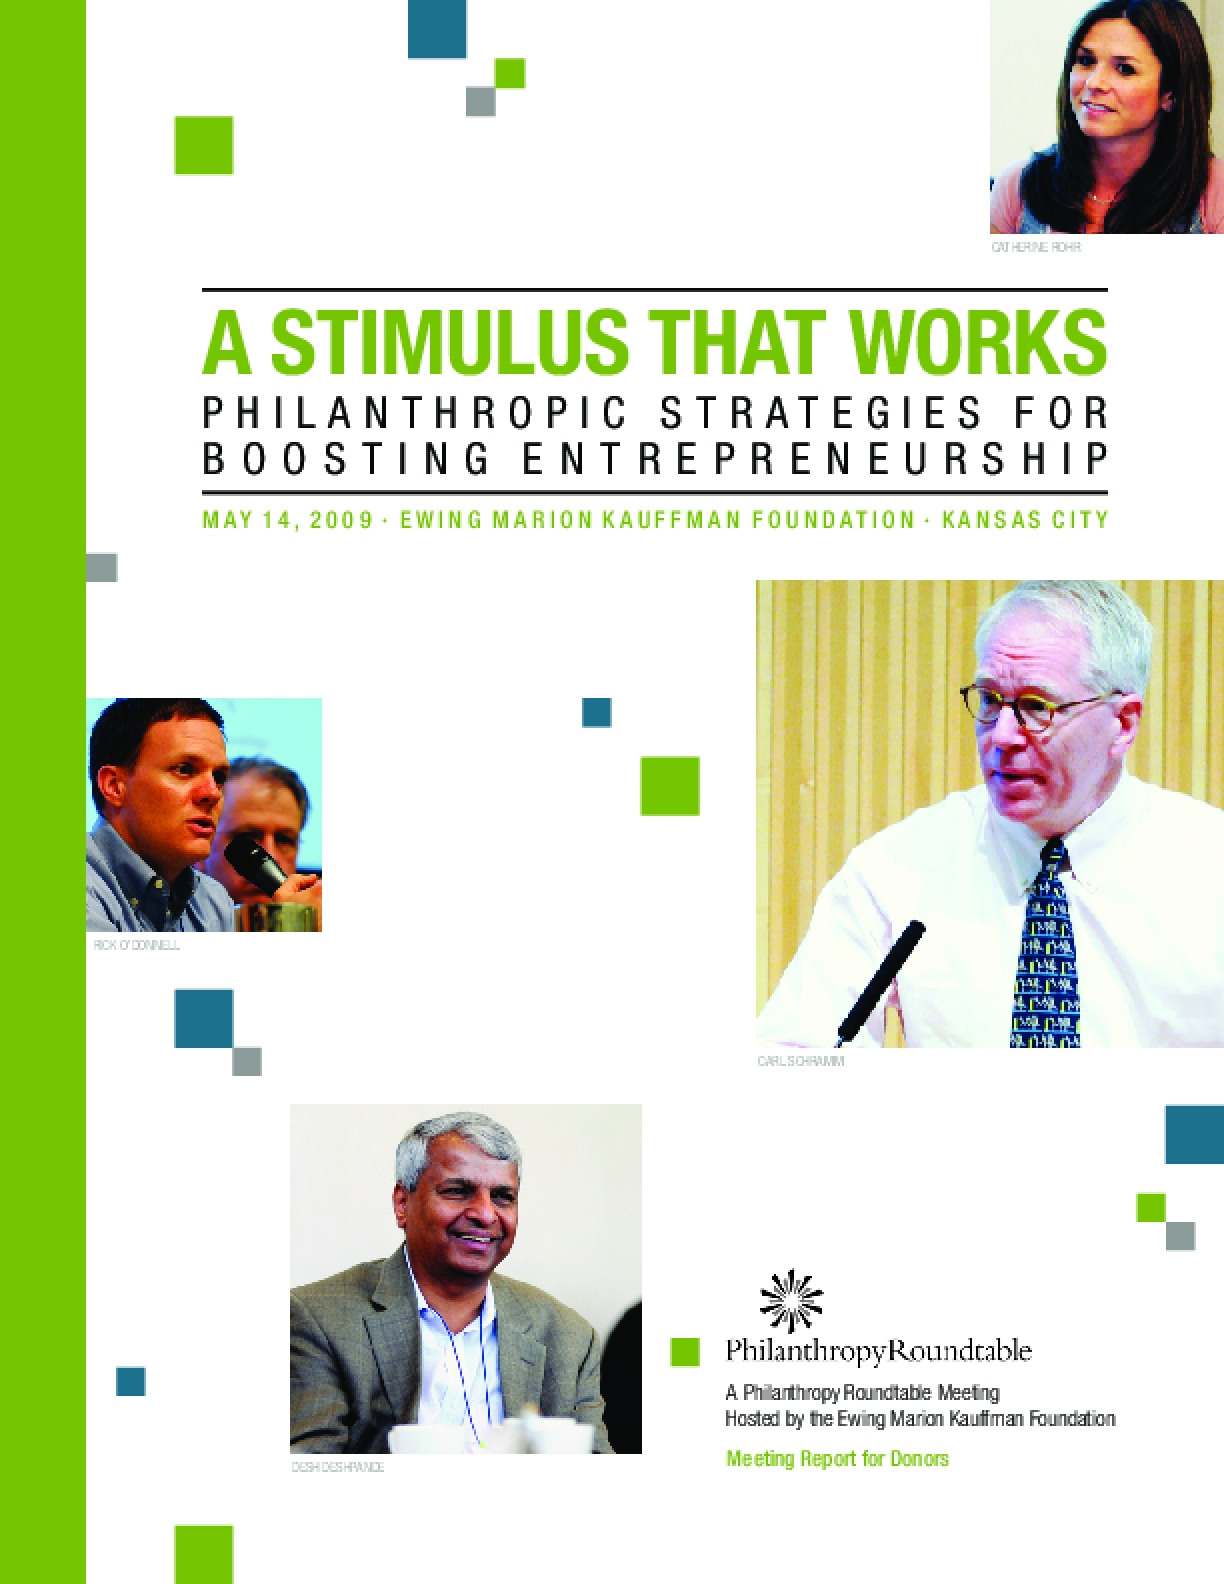 A Stimulus That Works: Philanthropic Strategies for Boosting Entrepreneurship